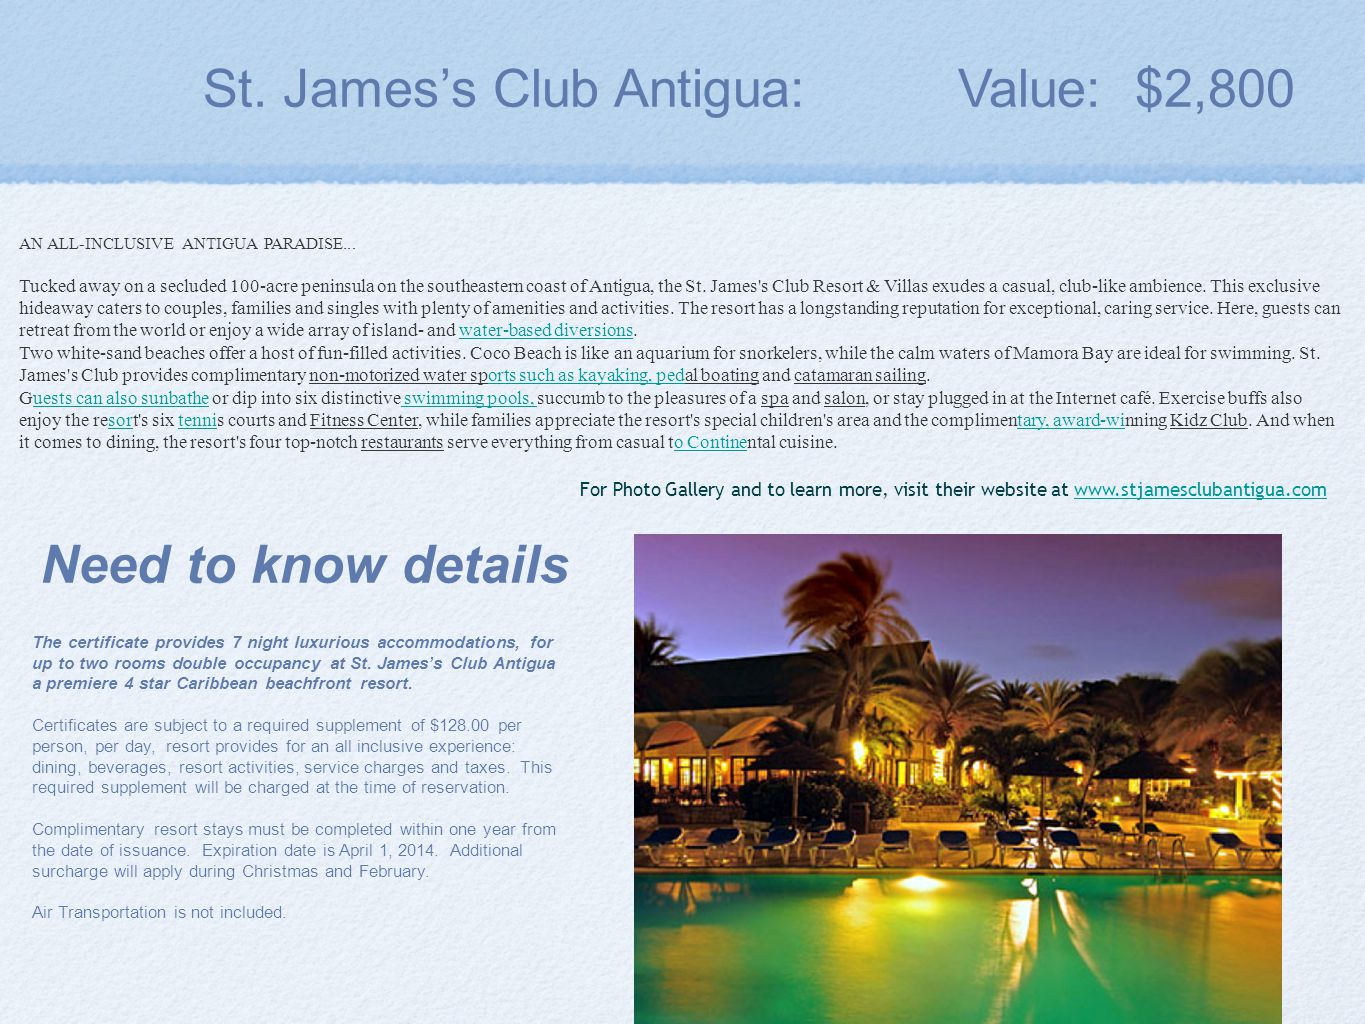 St. James's Club Antigua: Value: $2,800 The certificate provides 7 night luxurious accommodations, for up to two rooms double occupancy at St. James's